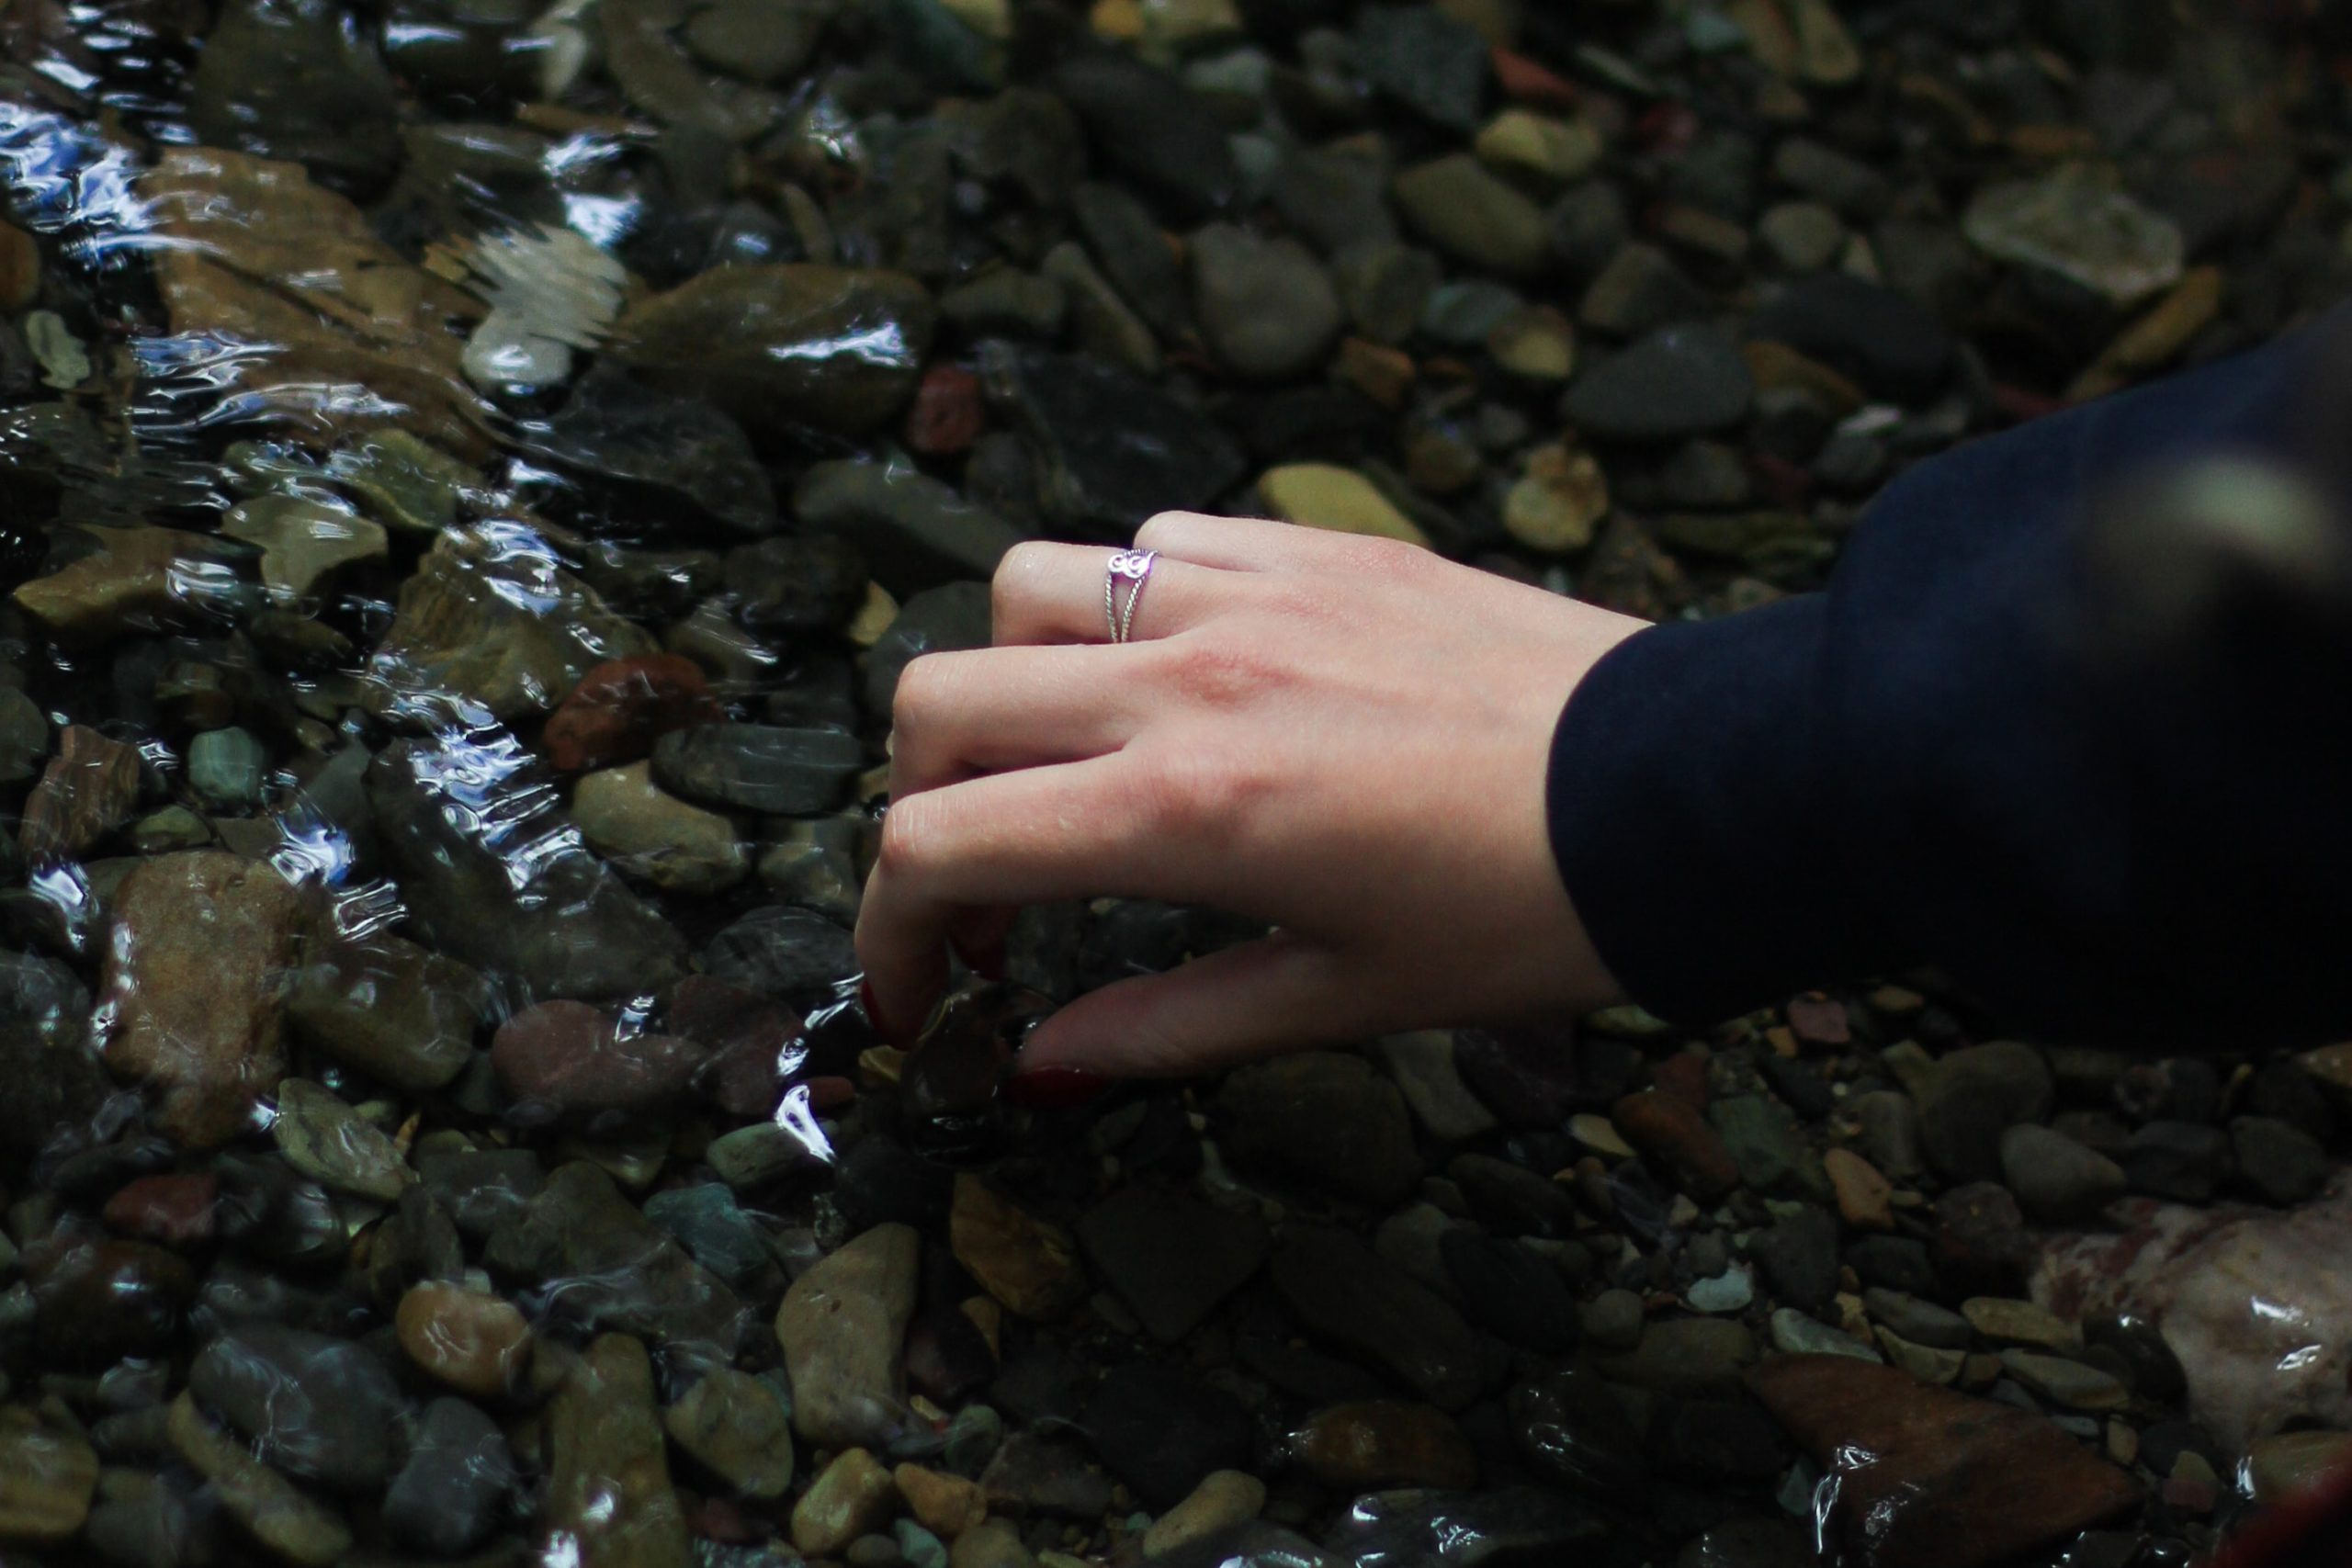 Someone picking up a pebble in a stream